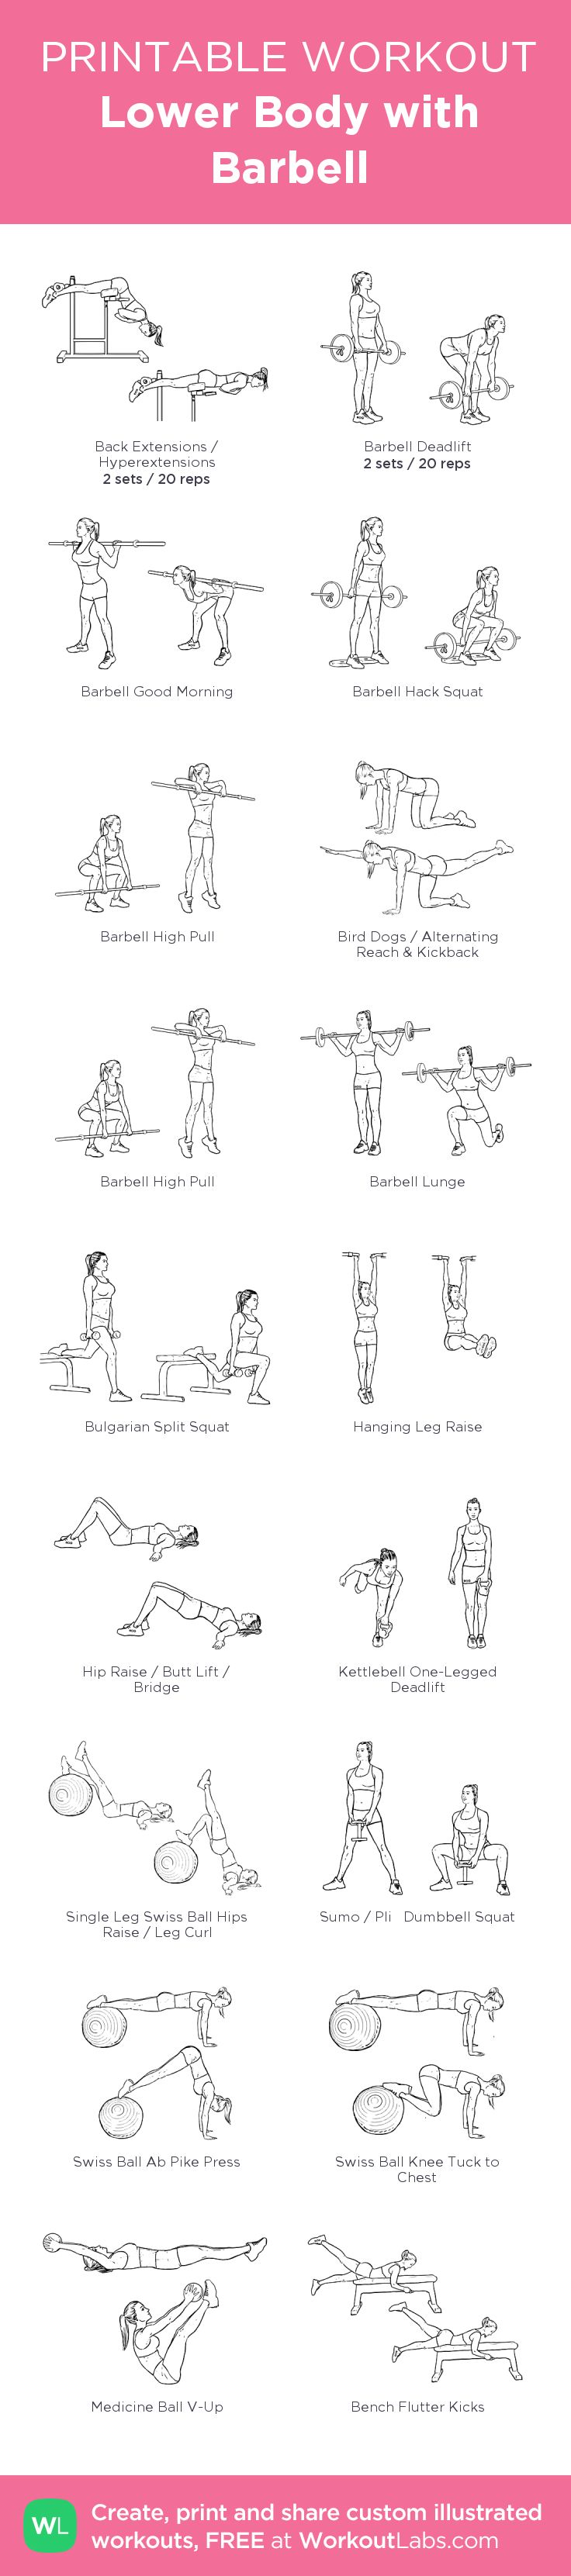 Lower Body with Barbell: my visual workout created at WorkoutLabs.com • Click through to customize and download as a FREE PDF! #customworkout